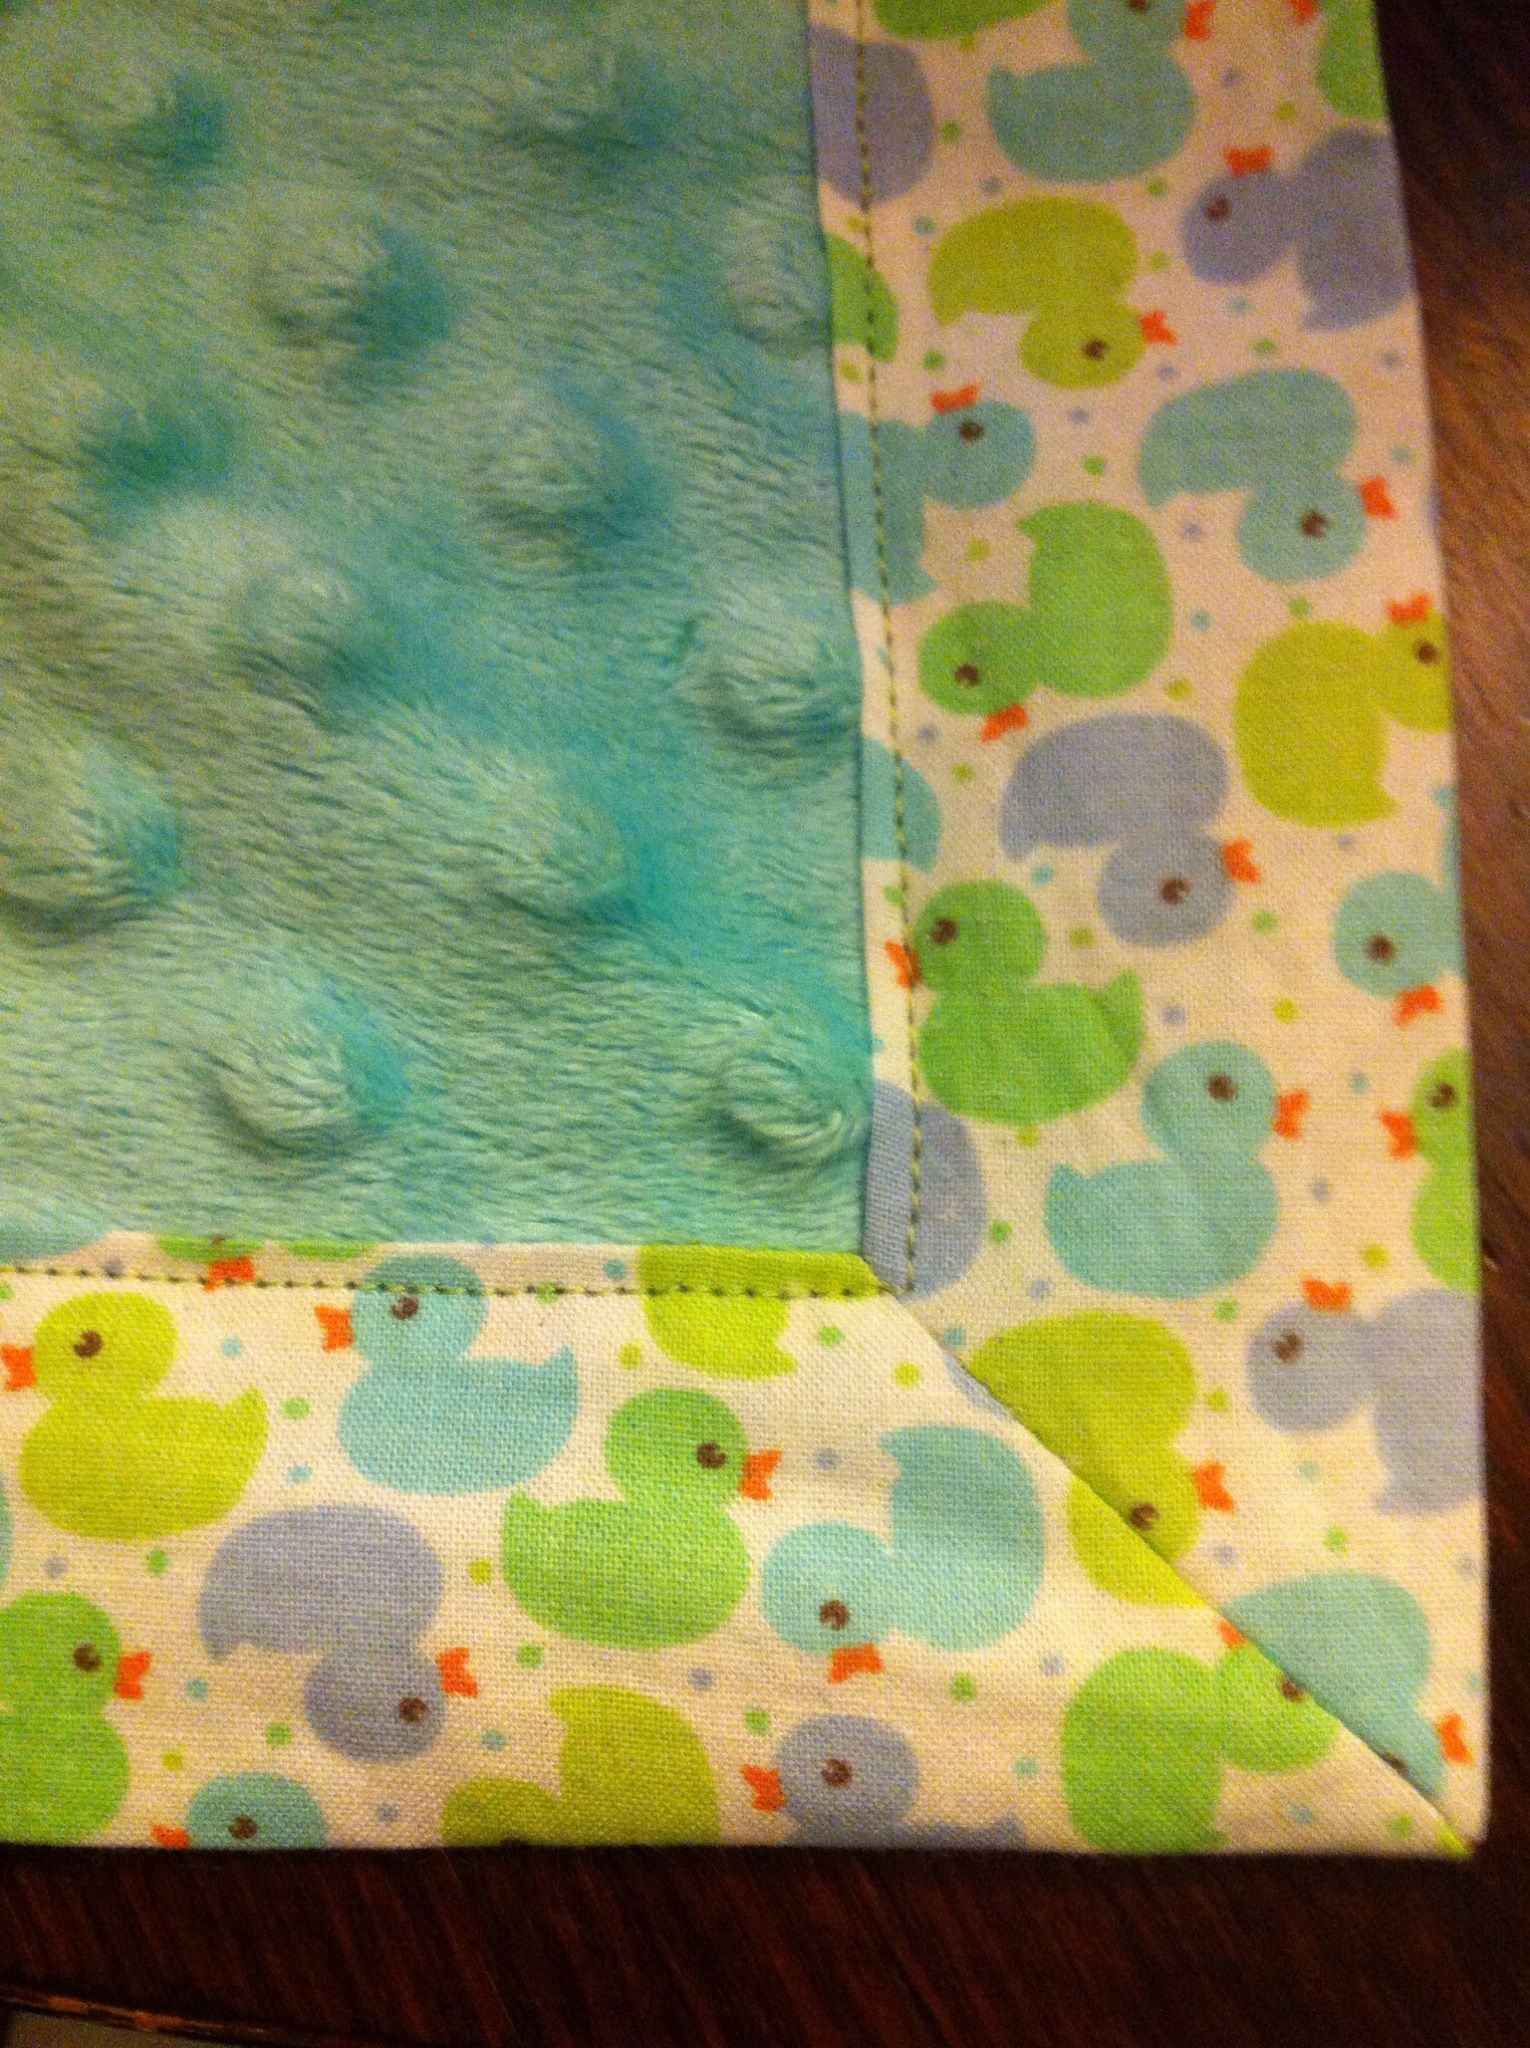 How to sew a nice corner on a blanket recipe diy pinterest